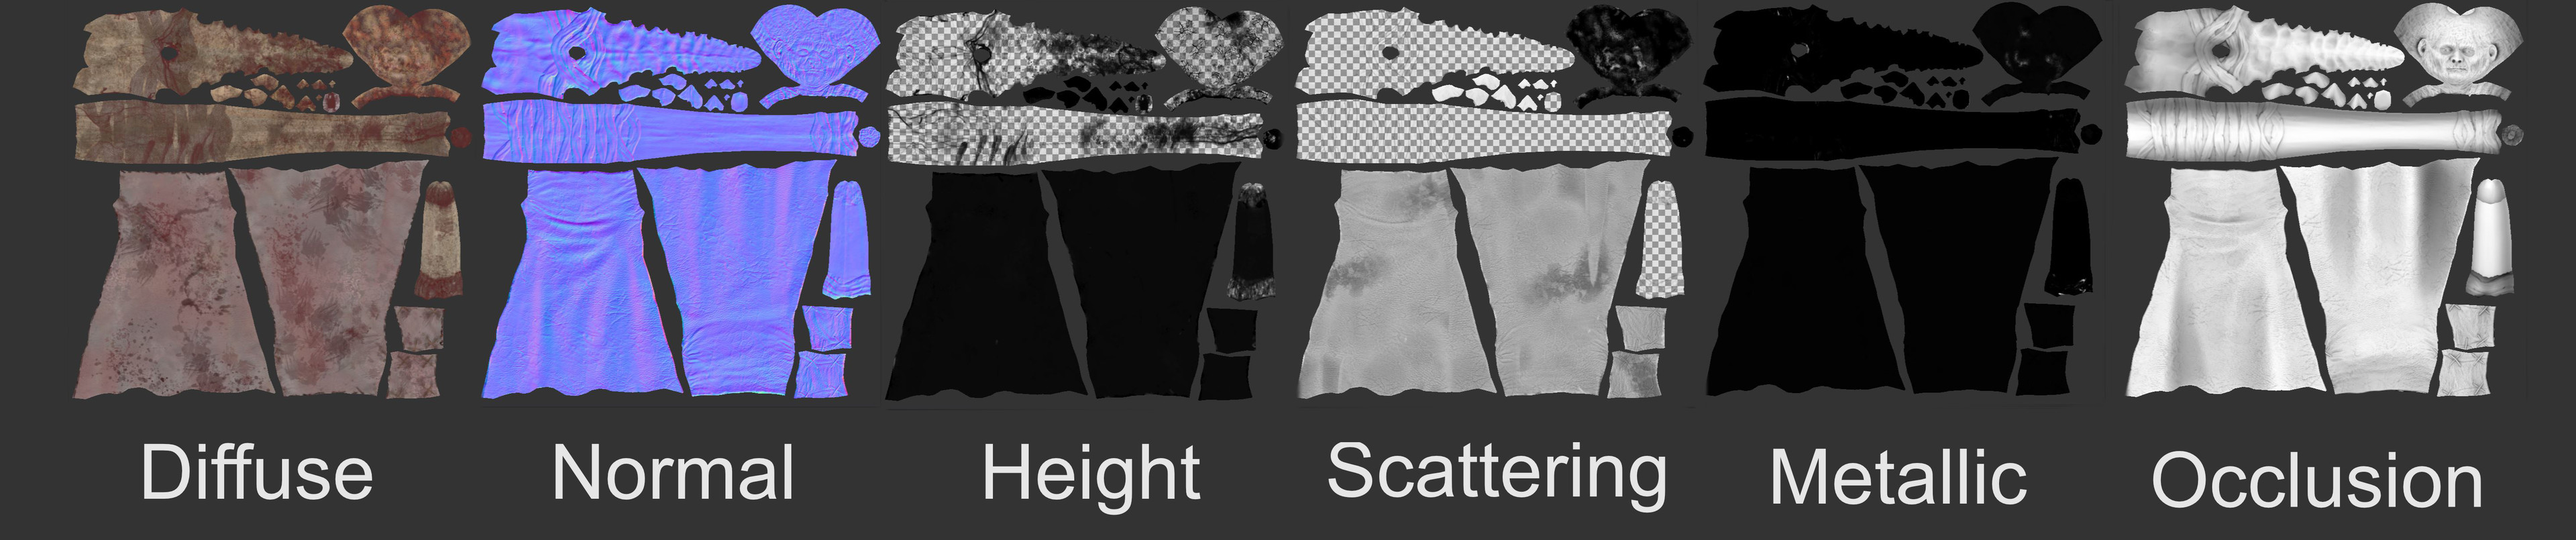 Texture maps for the creature.